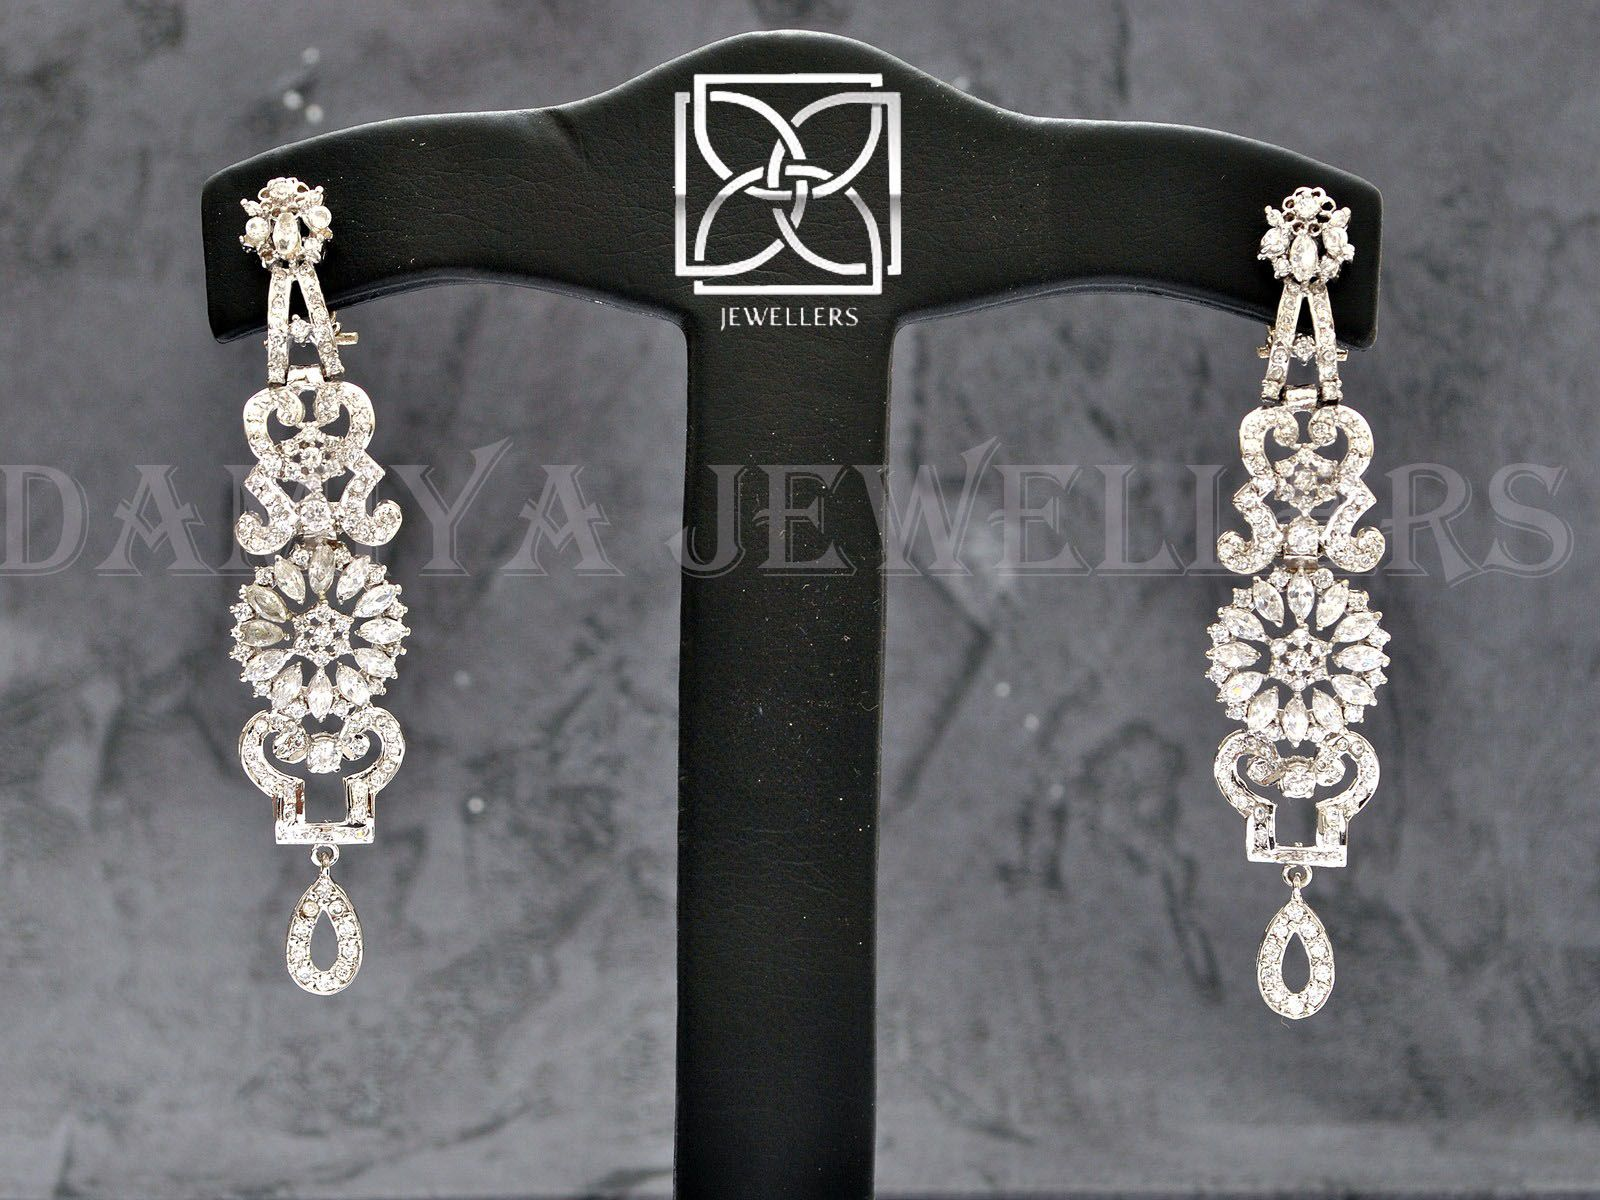 """A diamond styled chandeliers in 925 silver! She would say """"Yes"""" when find it as gift!                          https://www.facebook.com/pages/Damiya-Jewellers/289361234463272?ref=hl"""